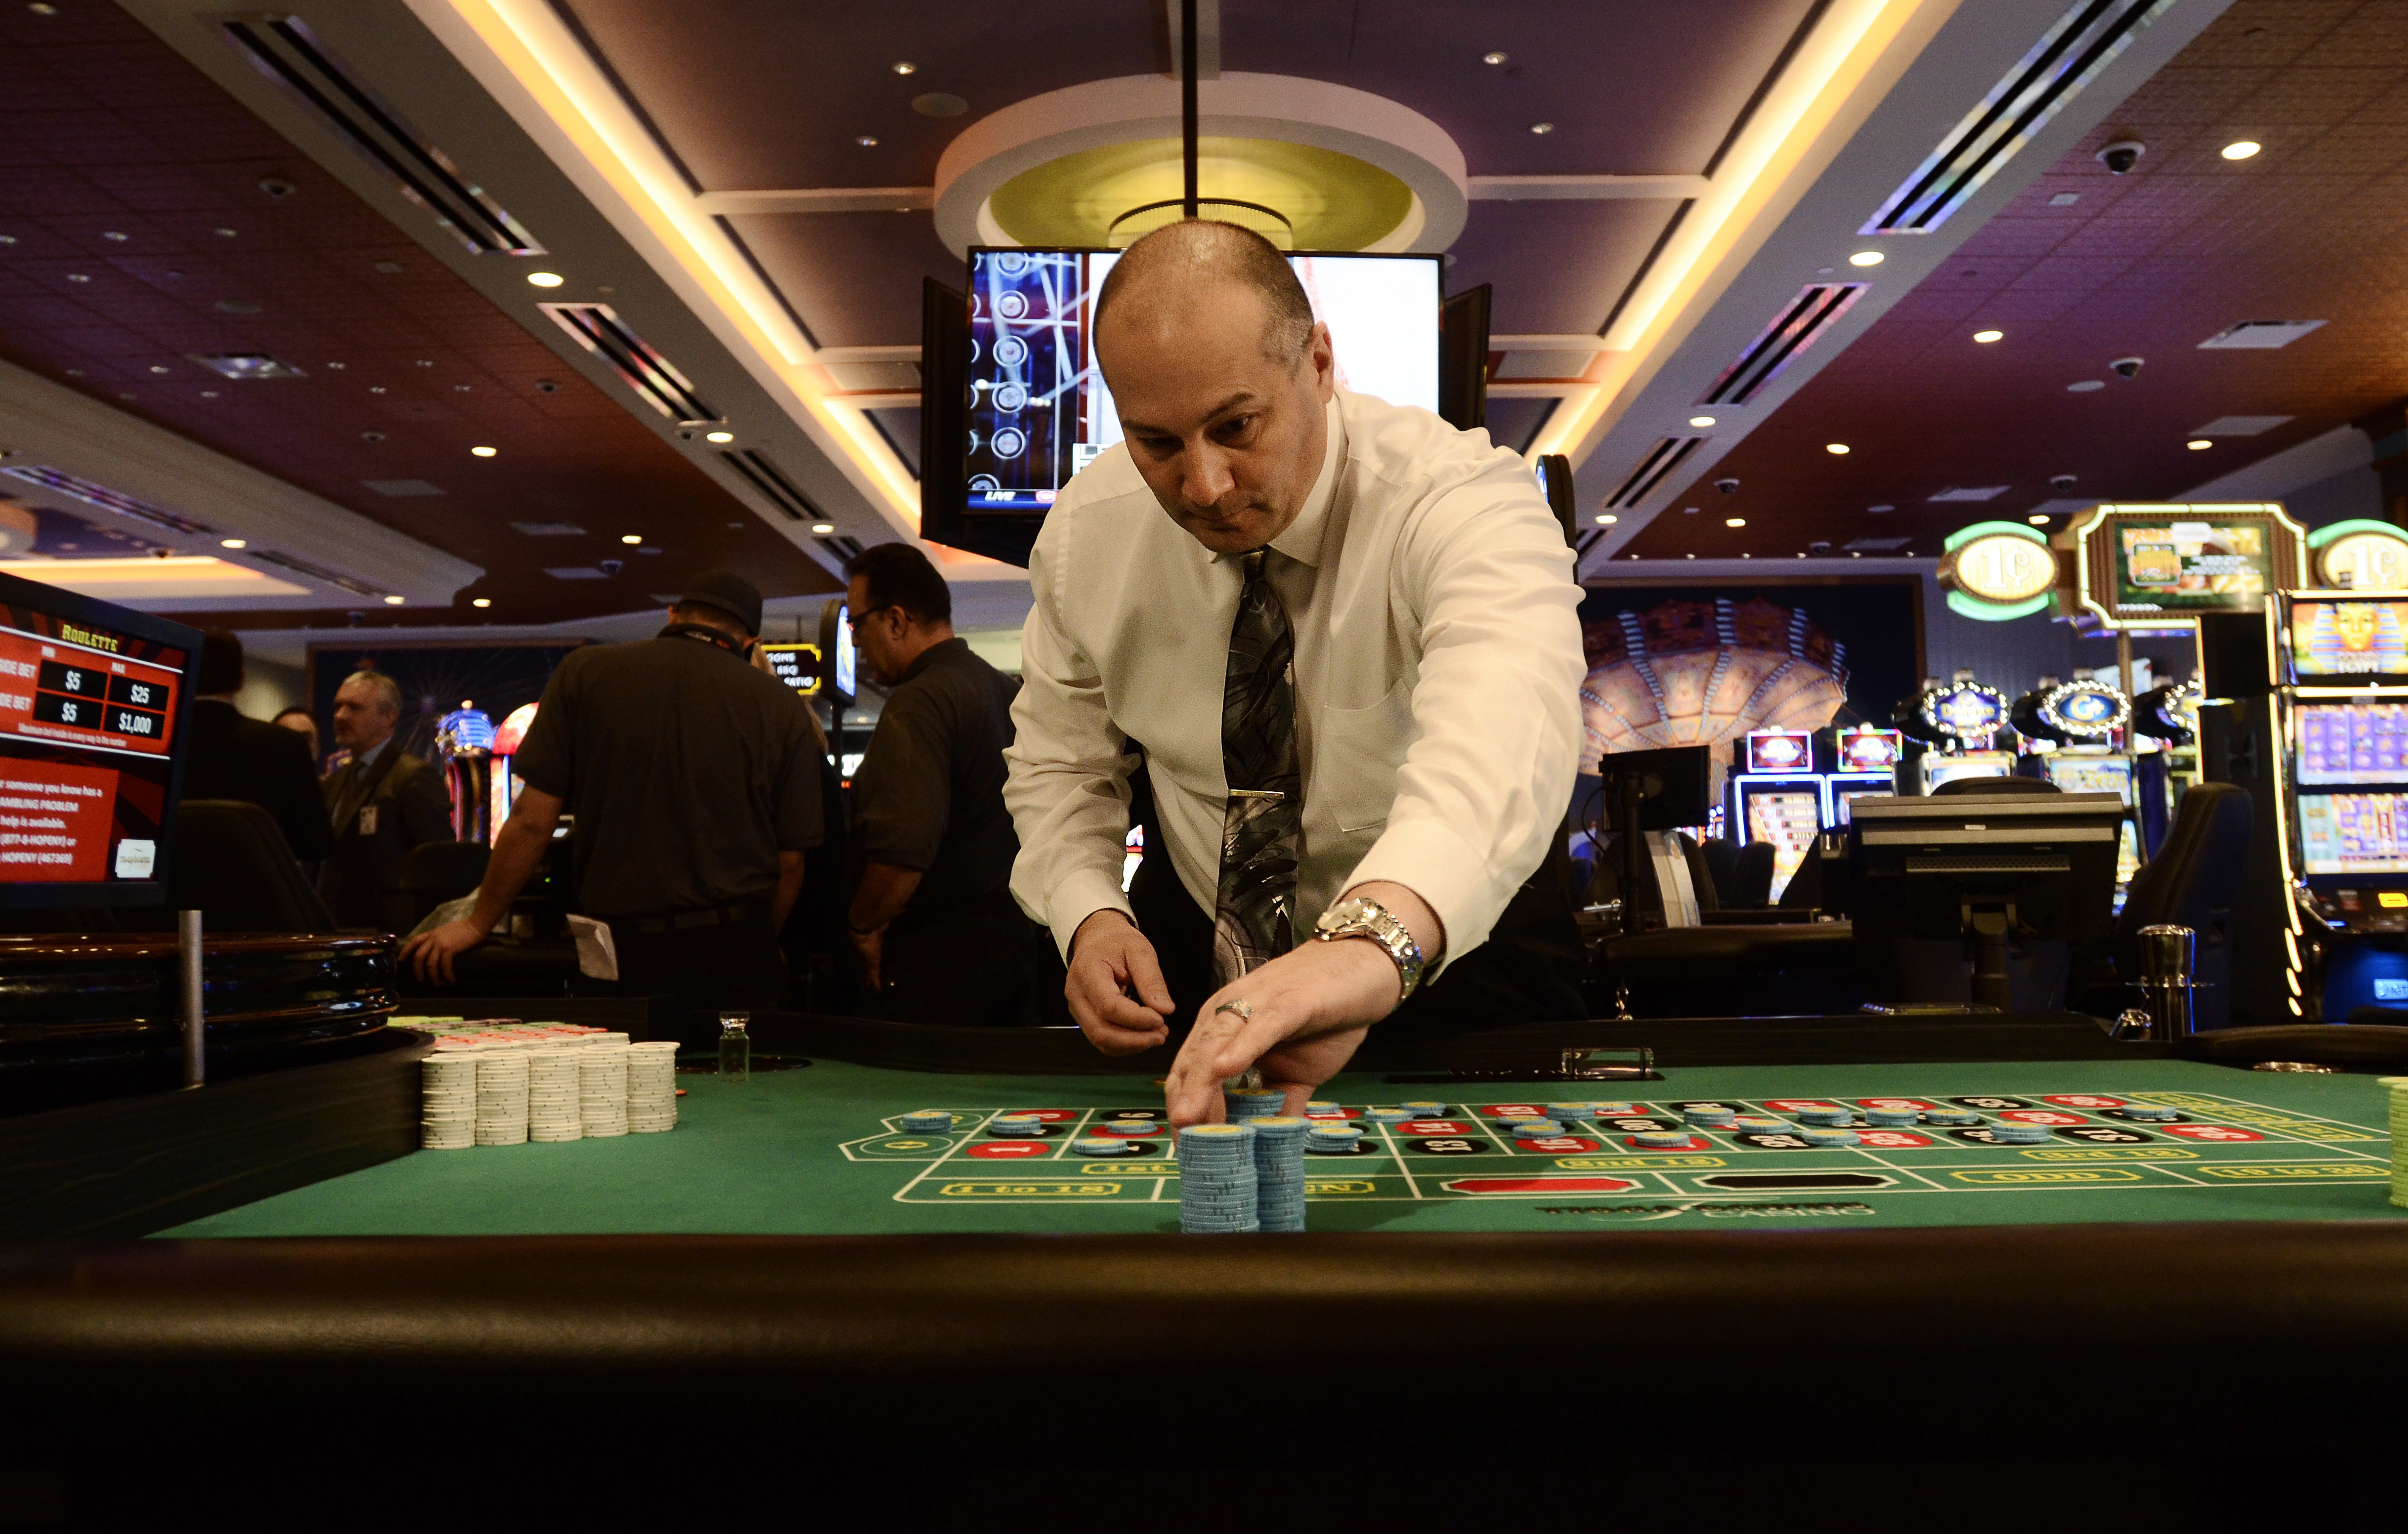 New-York-Casino-Gambl_sham.jpg